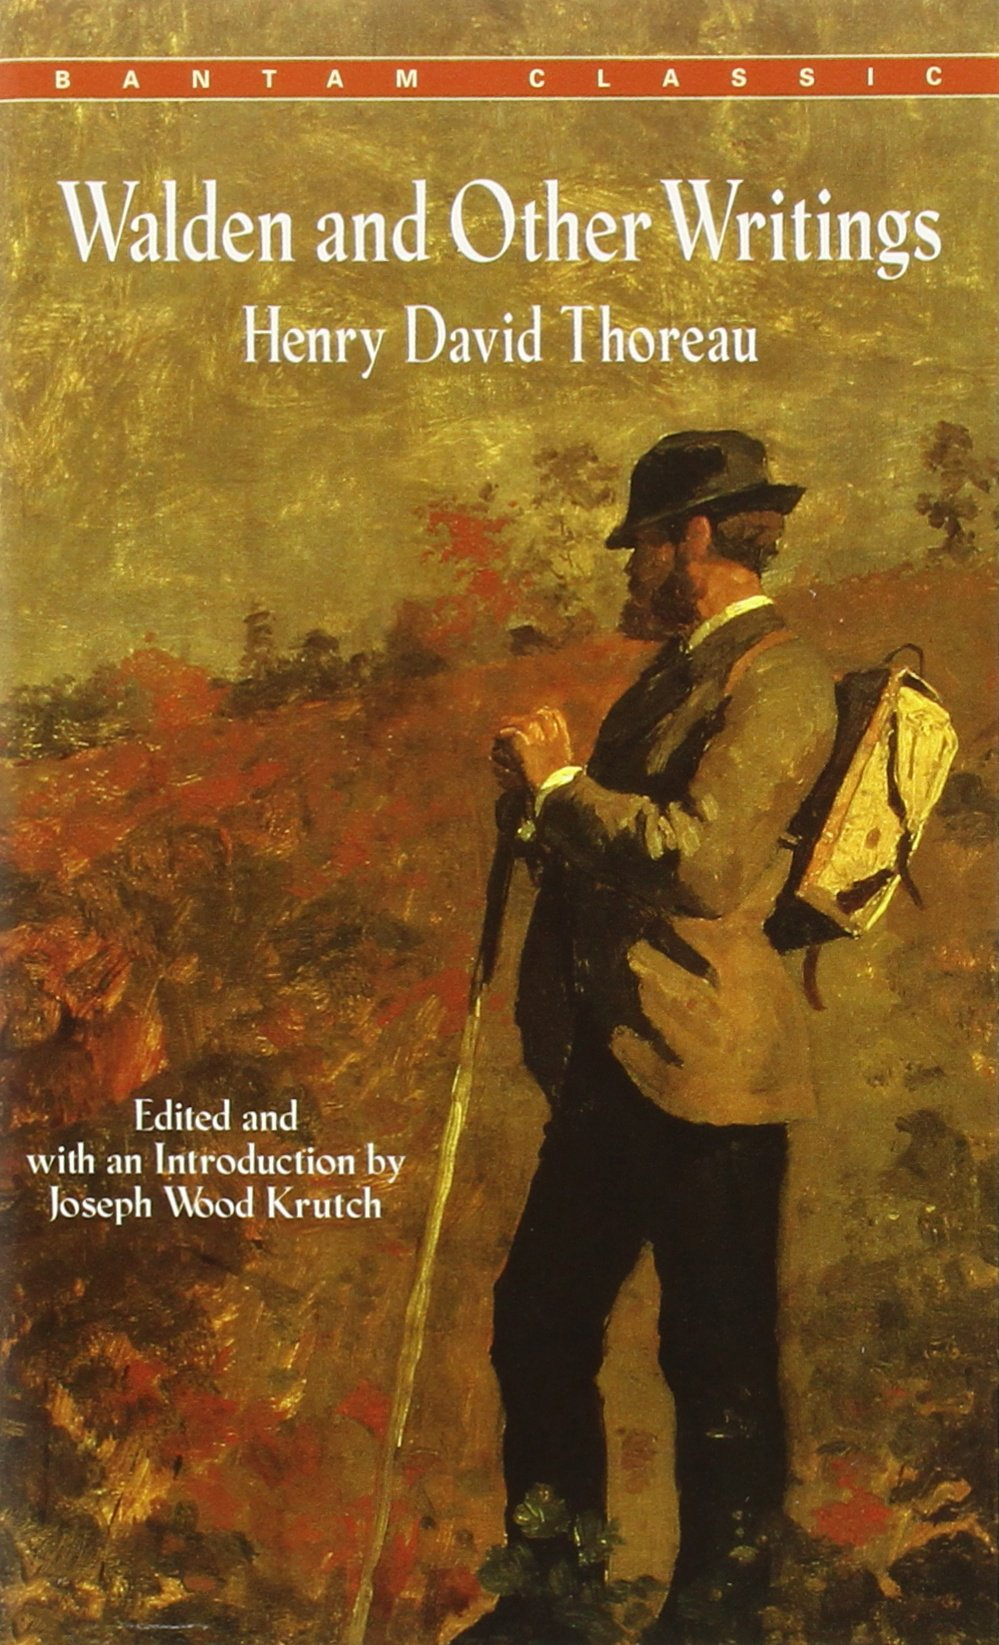 walden and other writings henry david thoreau 9780553212464 walden and other writings henry david thoreau 9780553212464 american literature